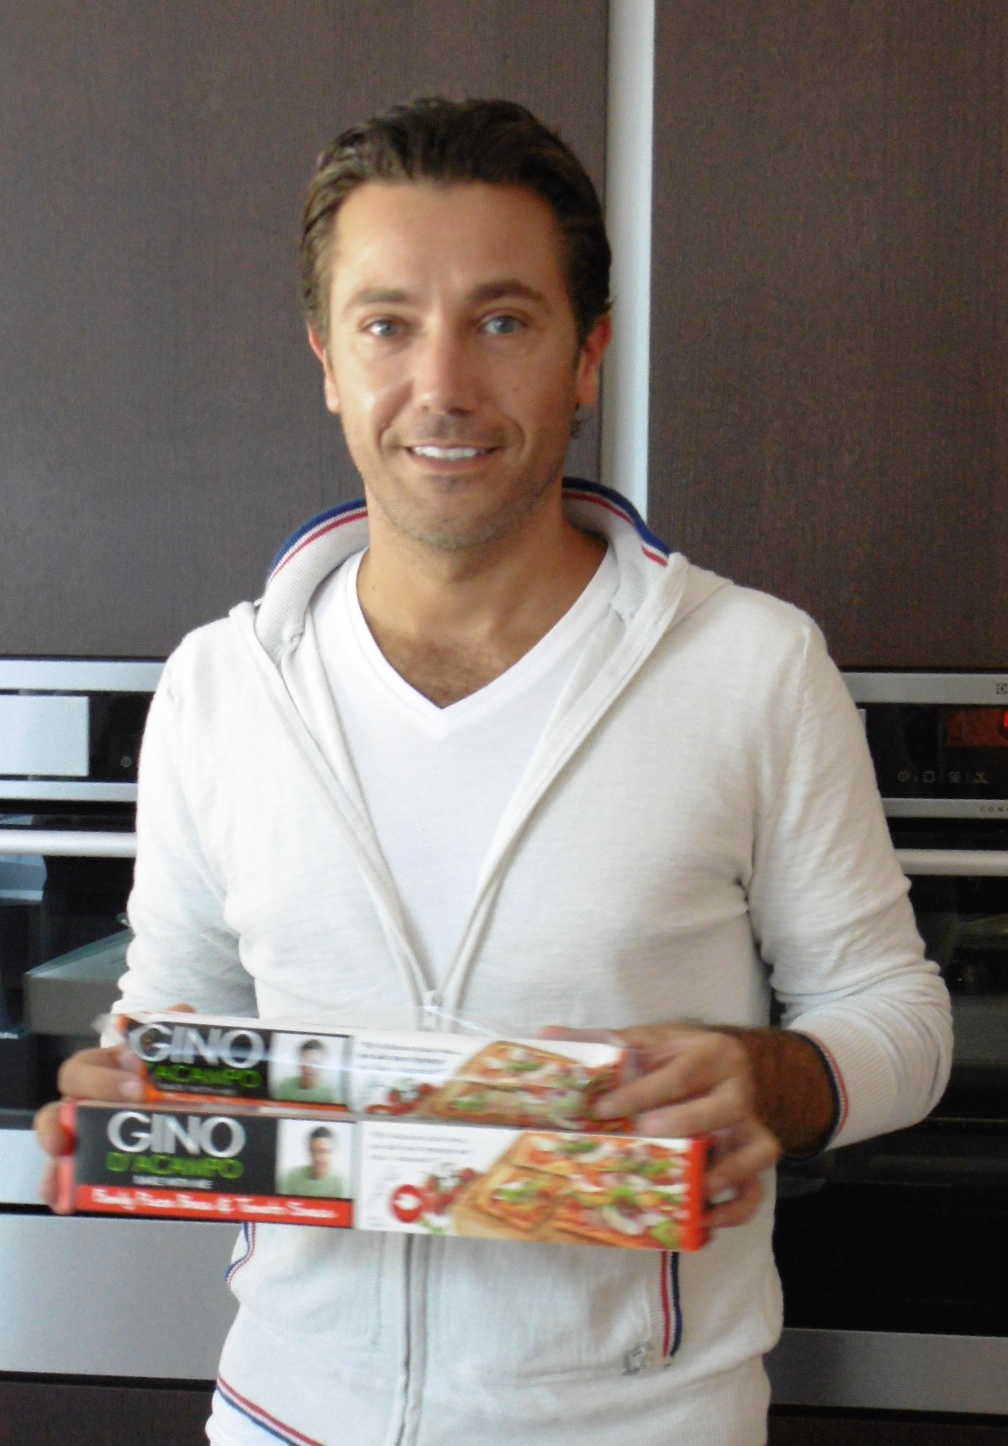 gino d'acampo - photo #28